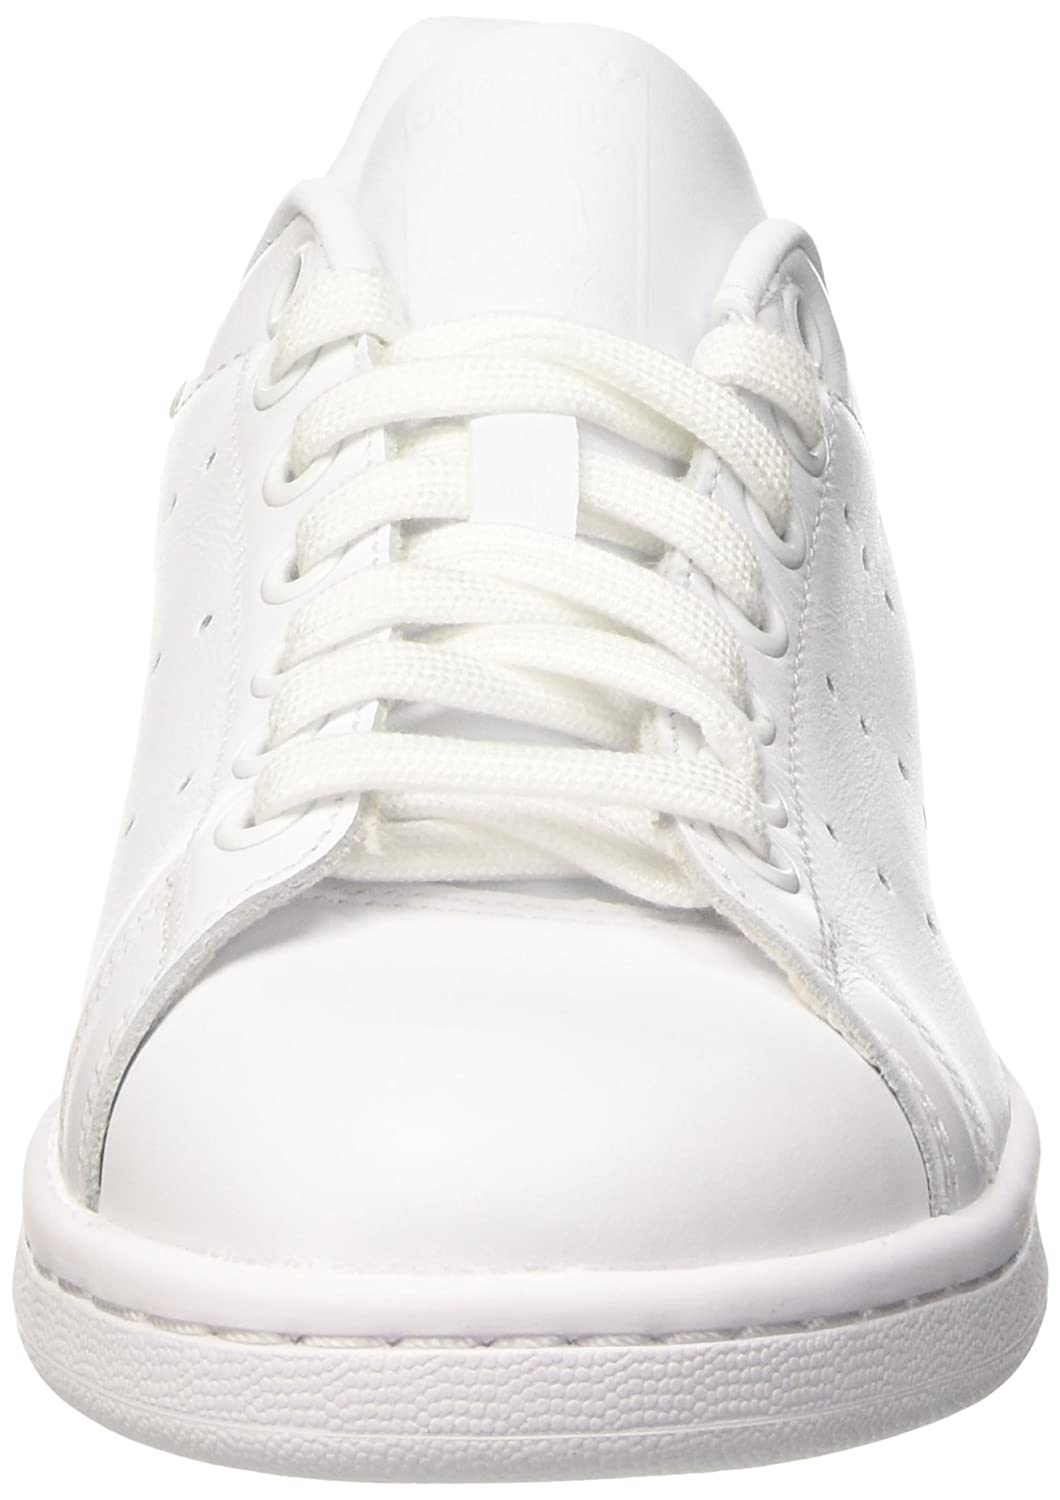 adidas Stan Smith Scarpe Low-Top, Unisex Scarpe Smith Adulto Stan Bianco a8a0644 - clintonheightsucc.website